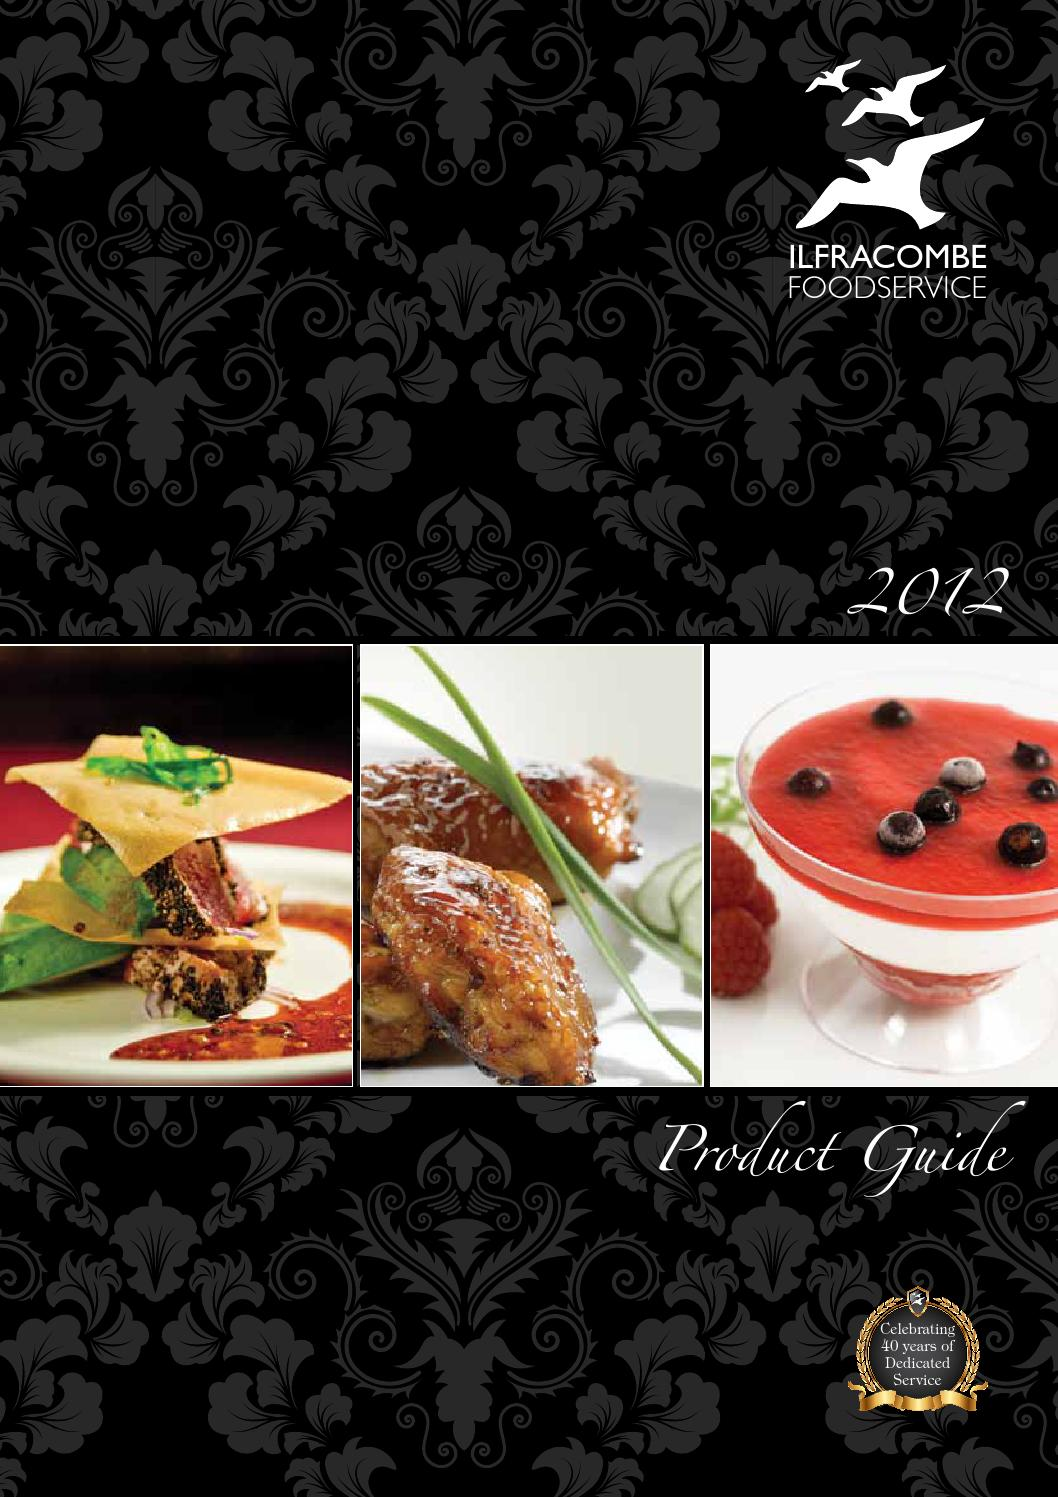 201220product20guide By Clevera Ltd Issuu Silver Queen Montes 50g